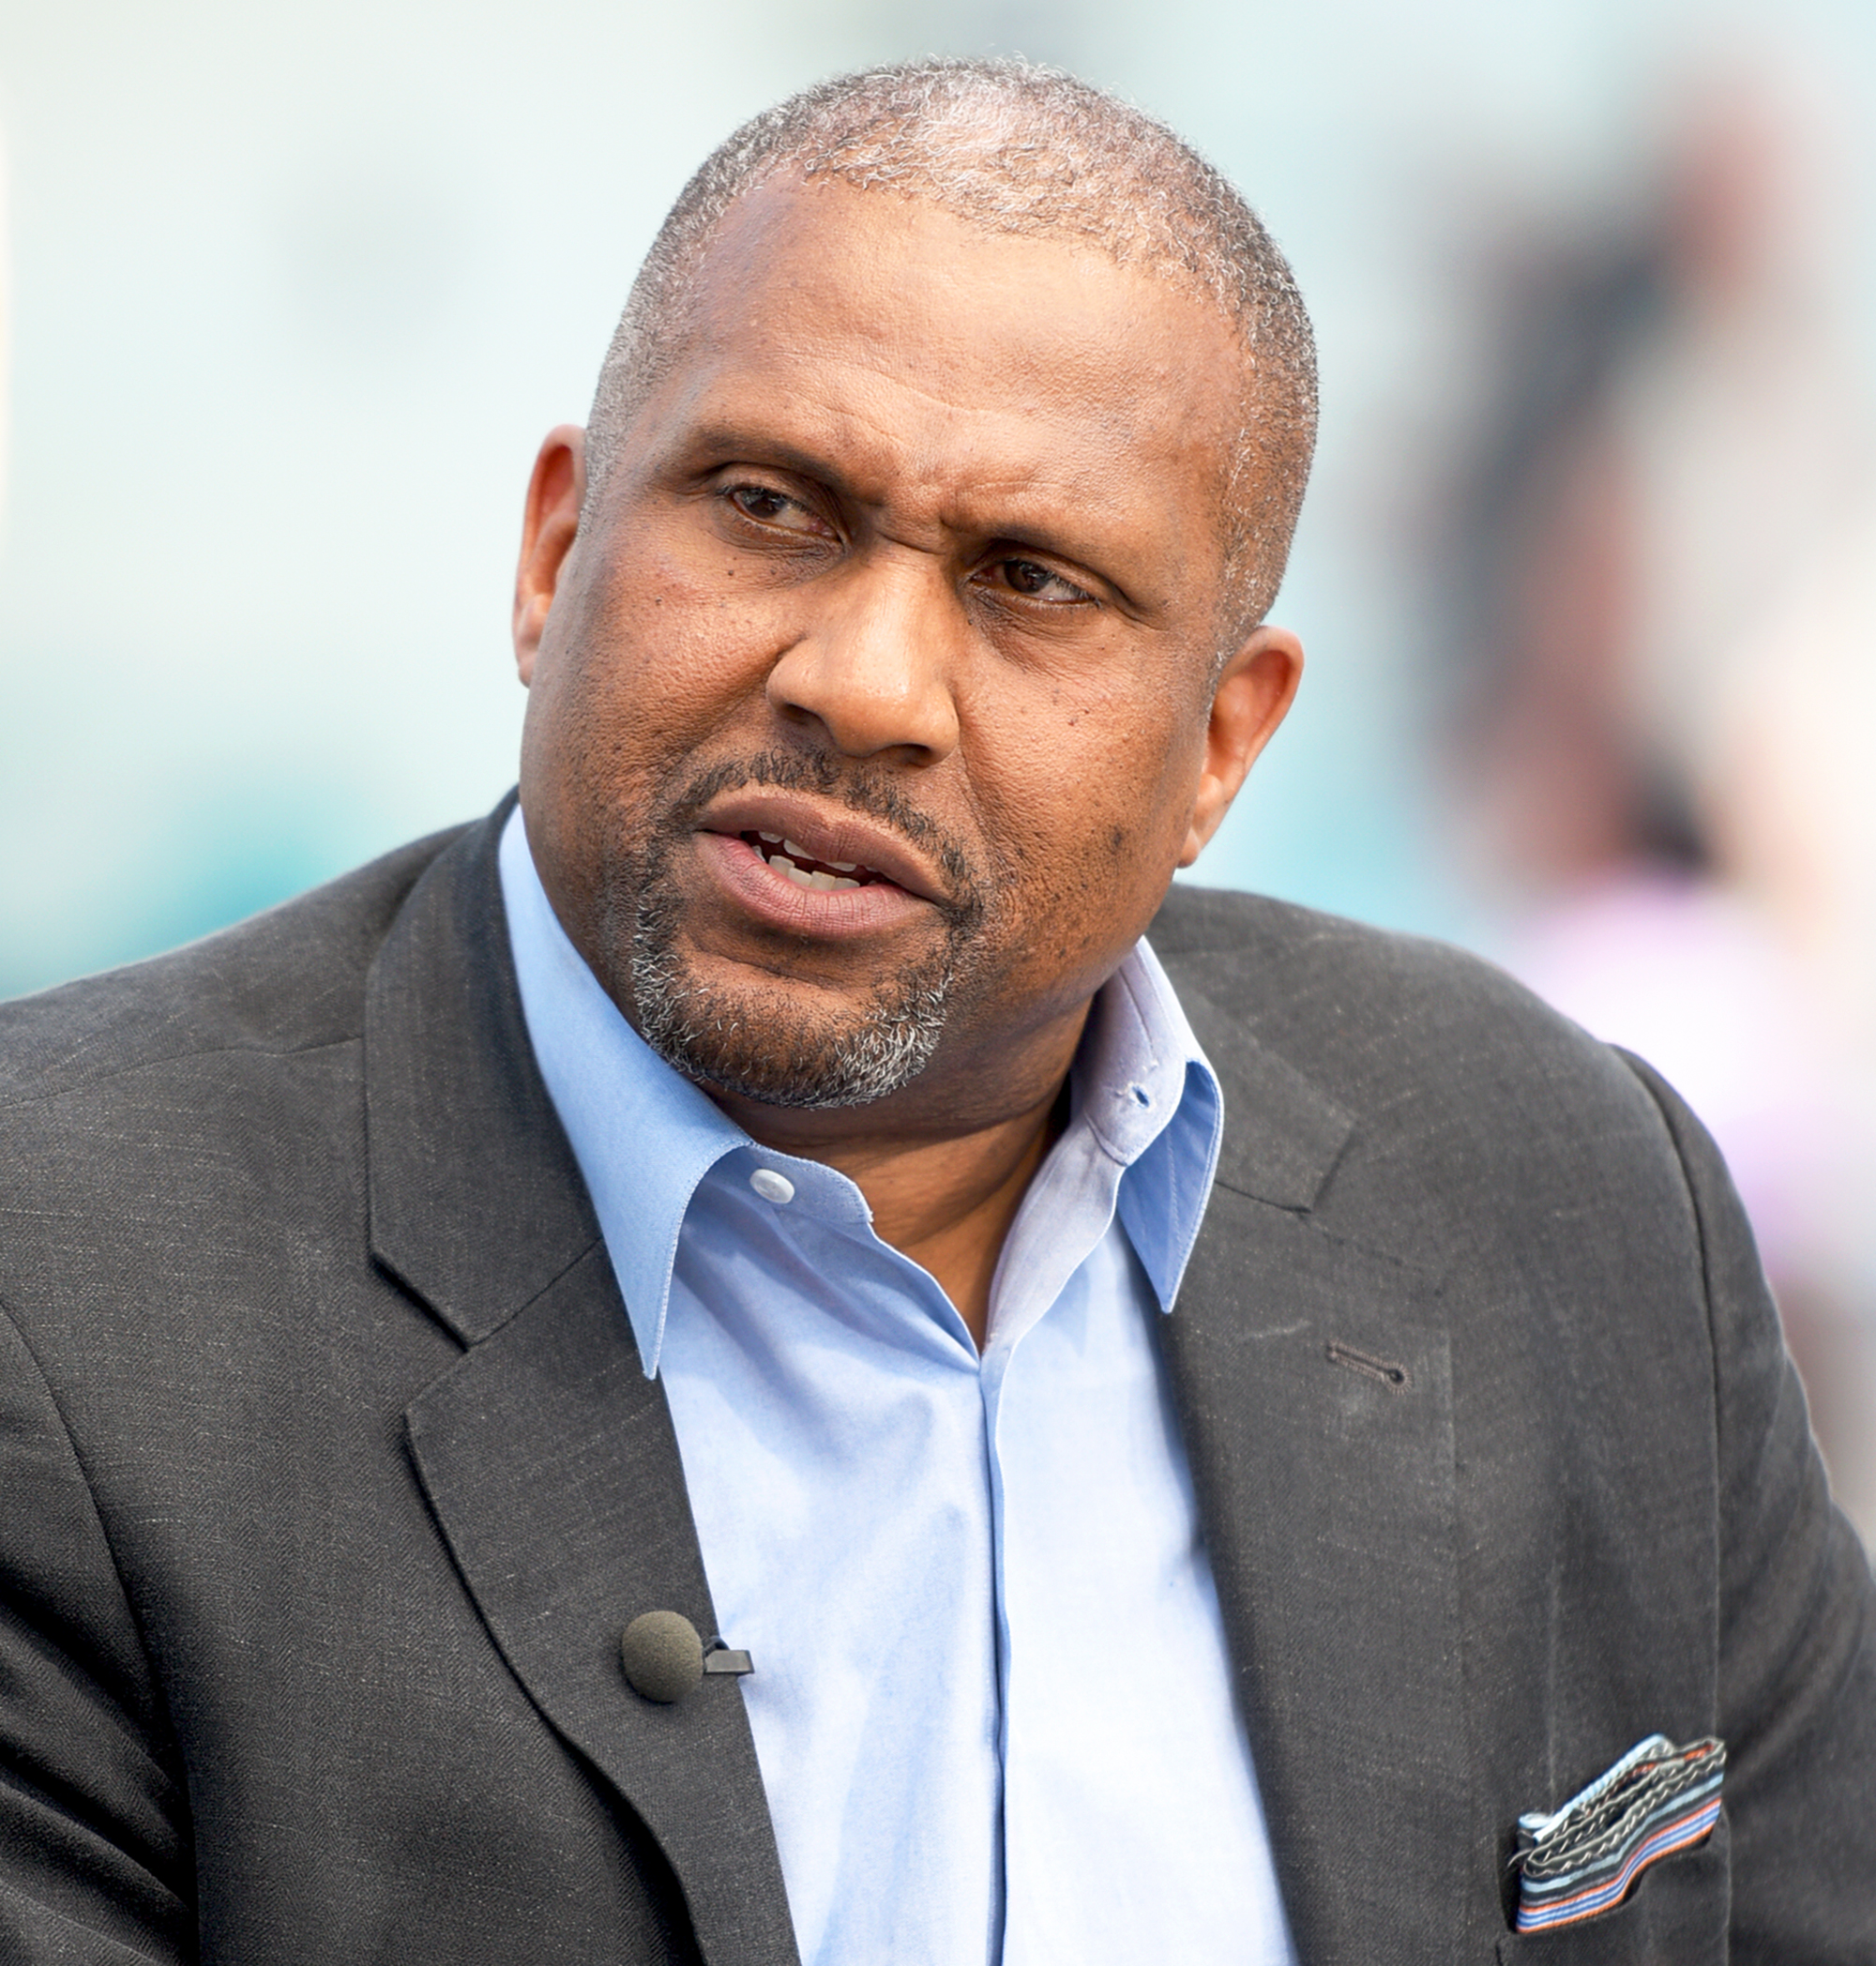 Tavis Smiley Sues PBS for Firing Over Sexual Misconduct Allegations